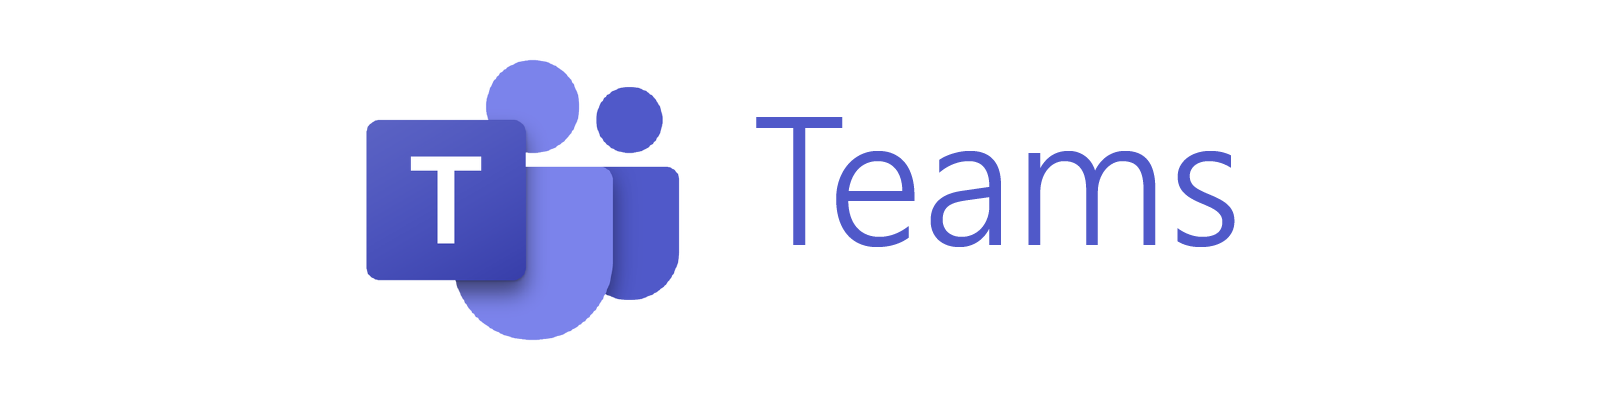 The logo for the Microsoft Teams application